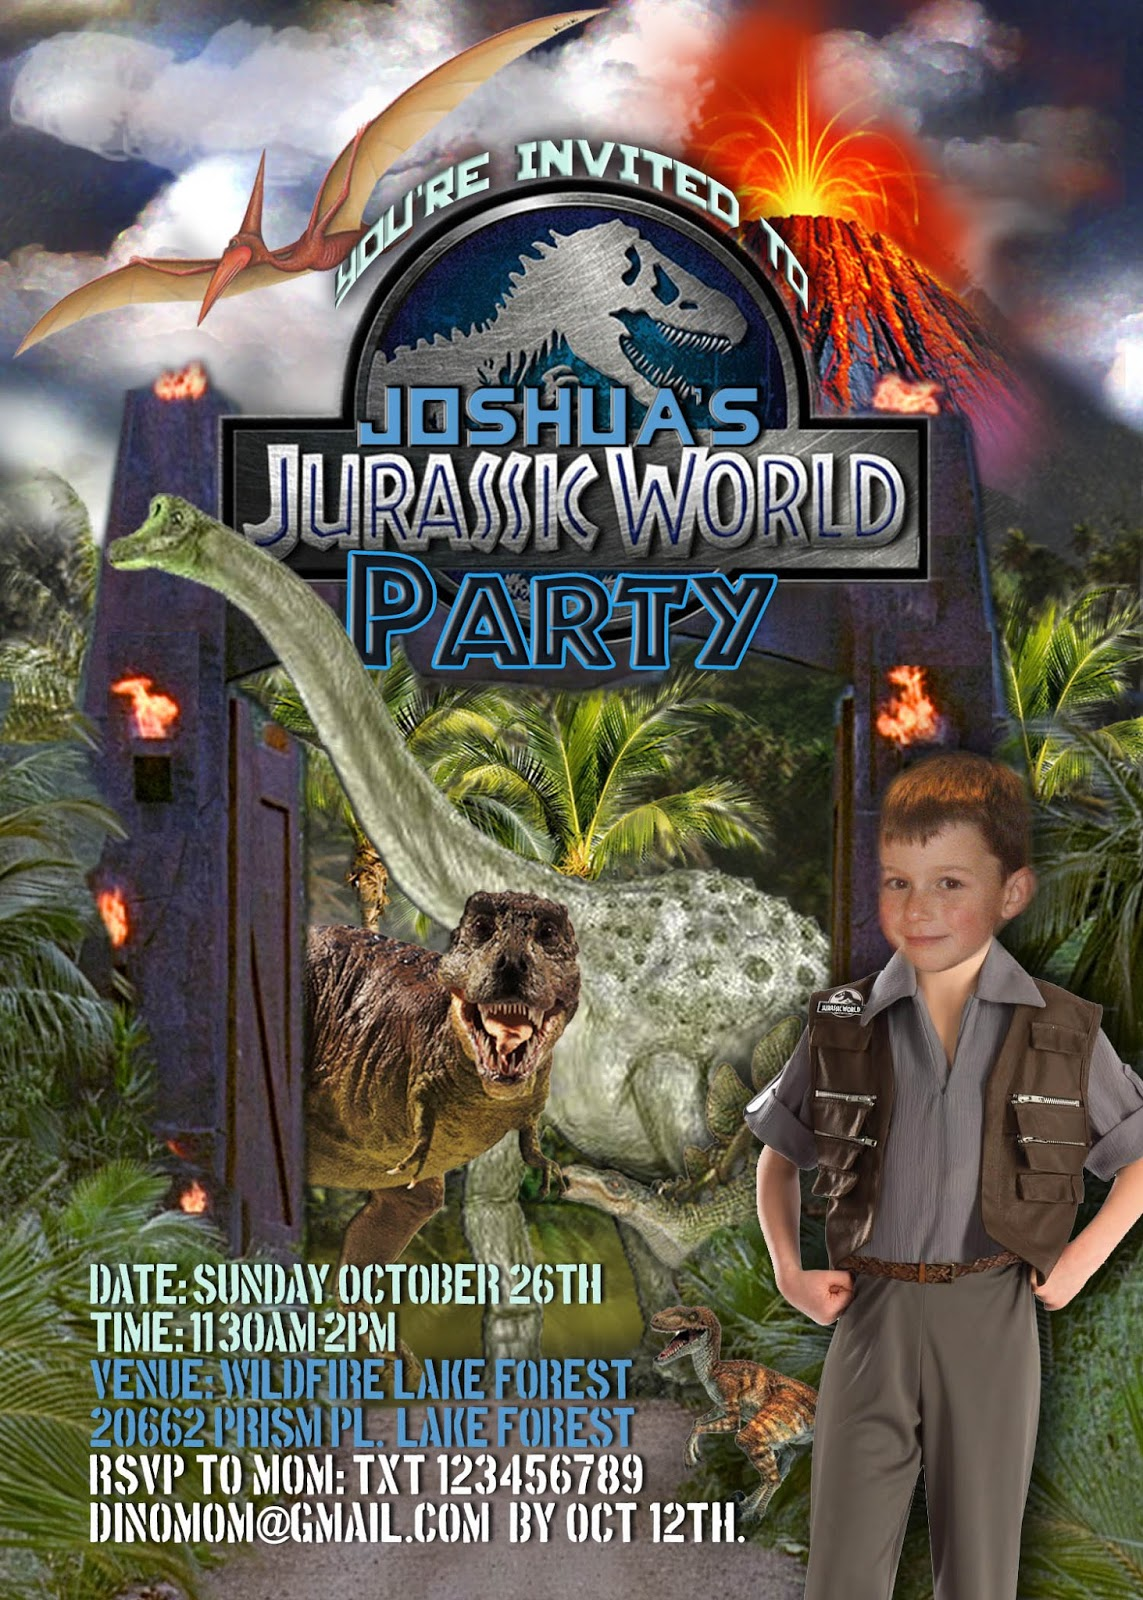 Star Wars Party Invites for best invitation sample